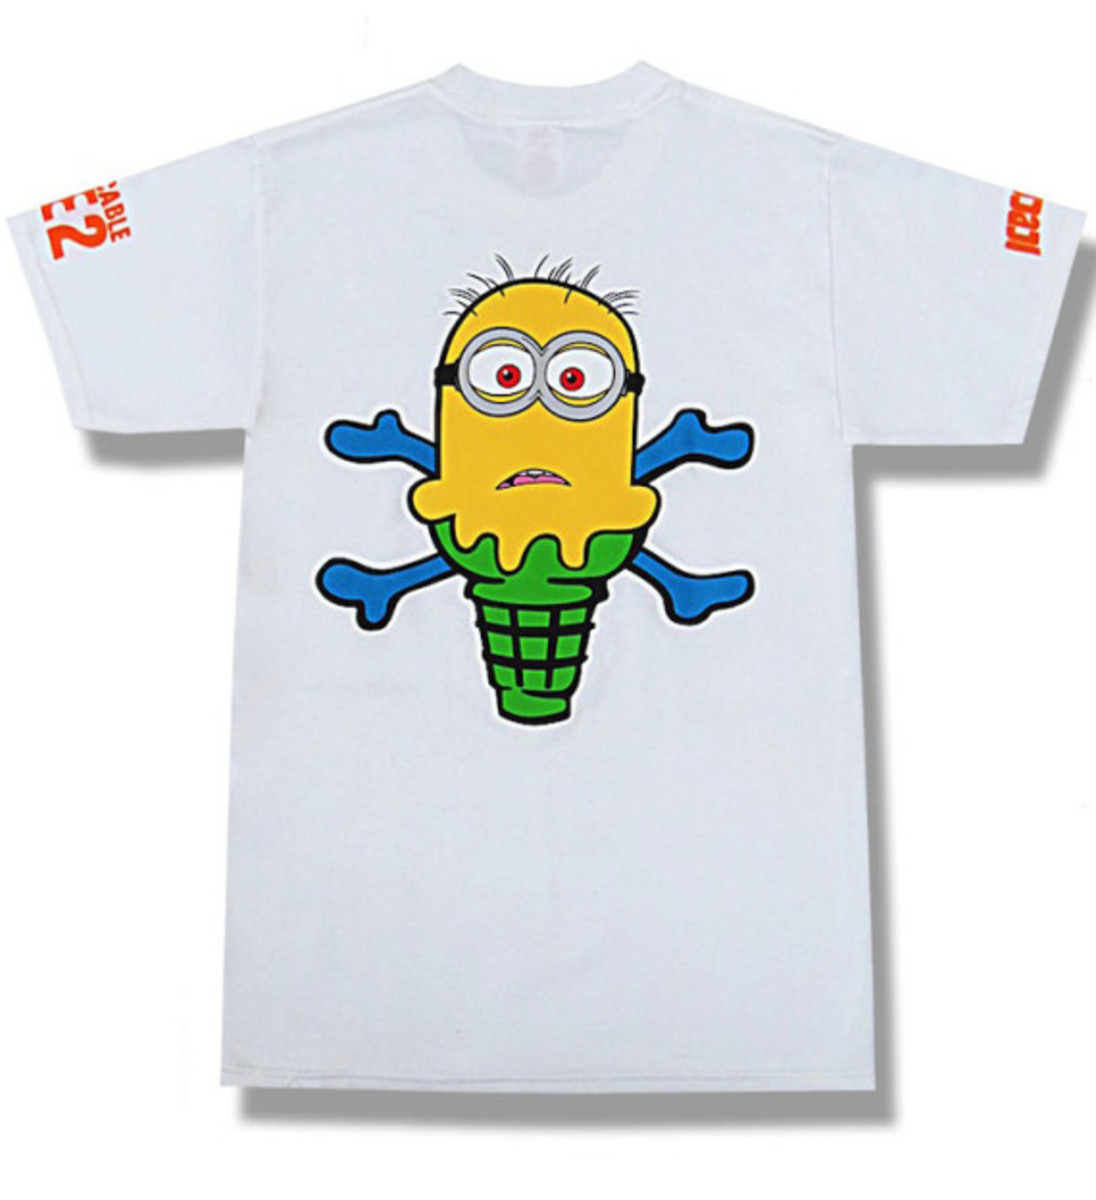 despicable-me-ice-cream-capsule-collection-03